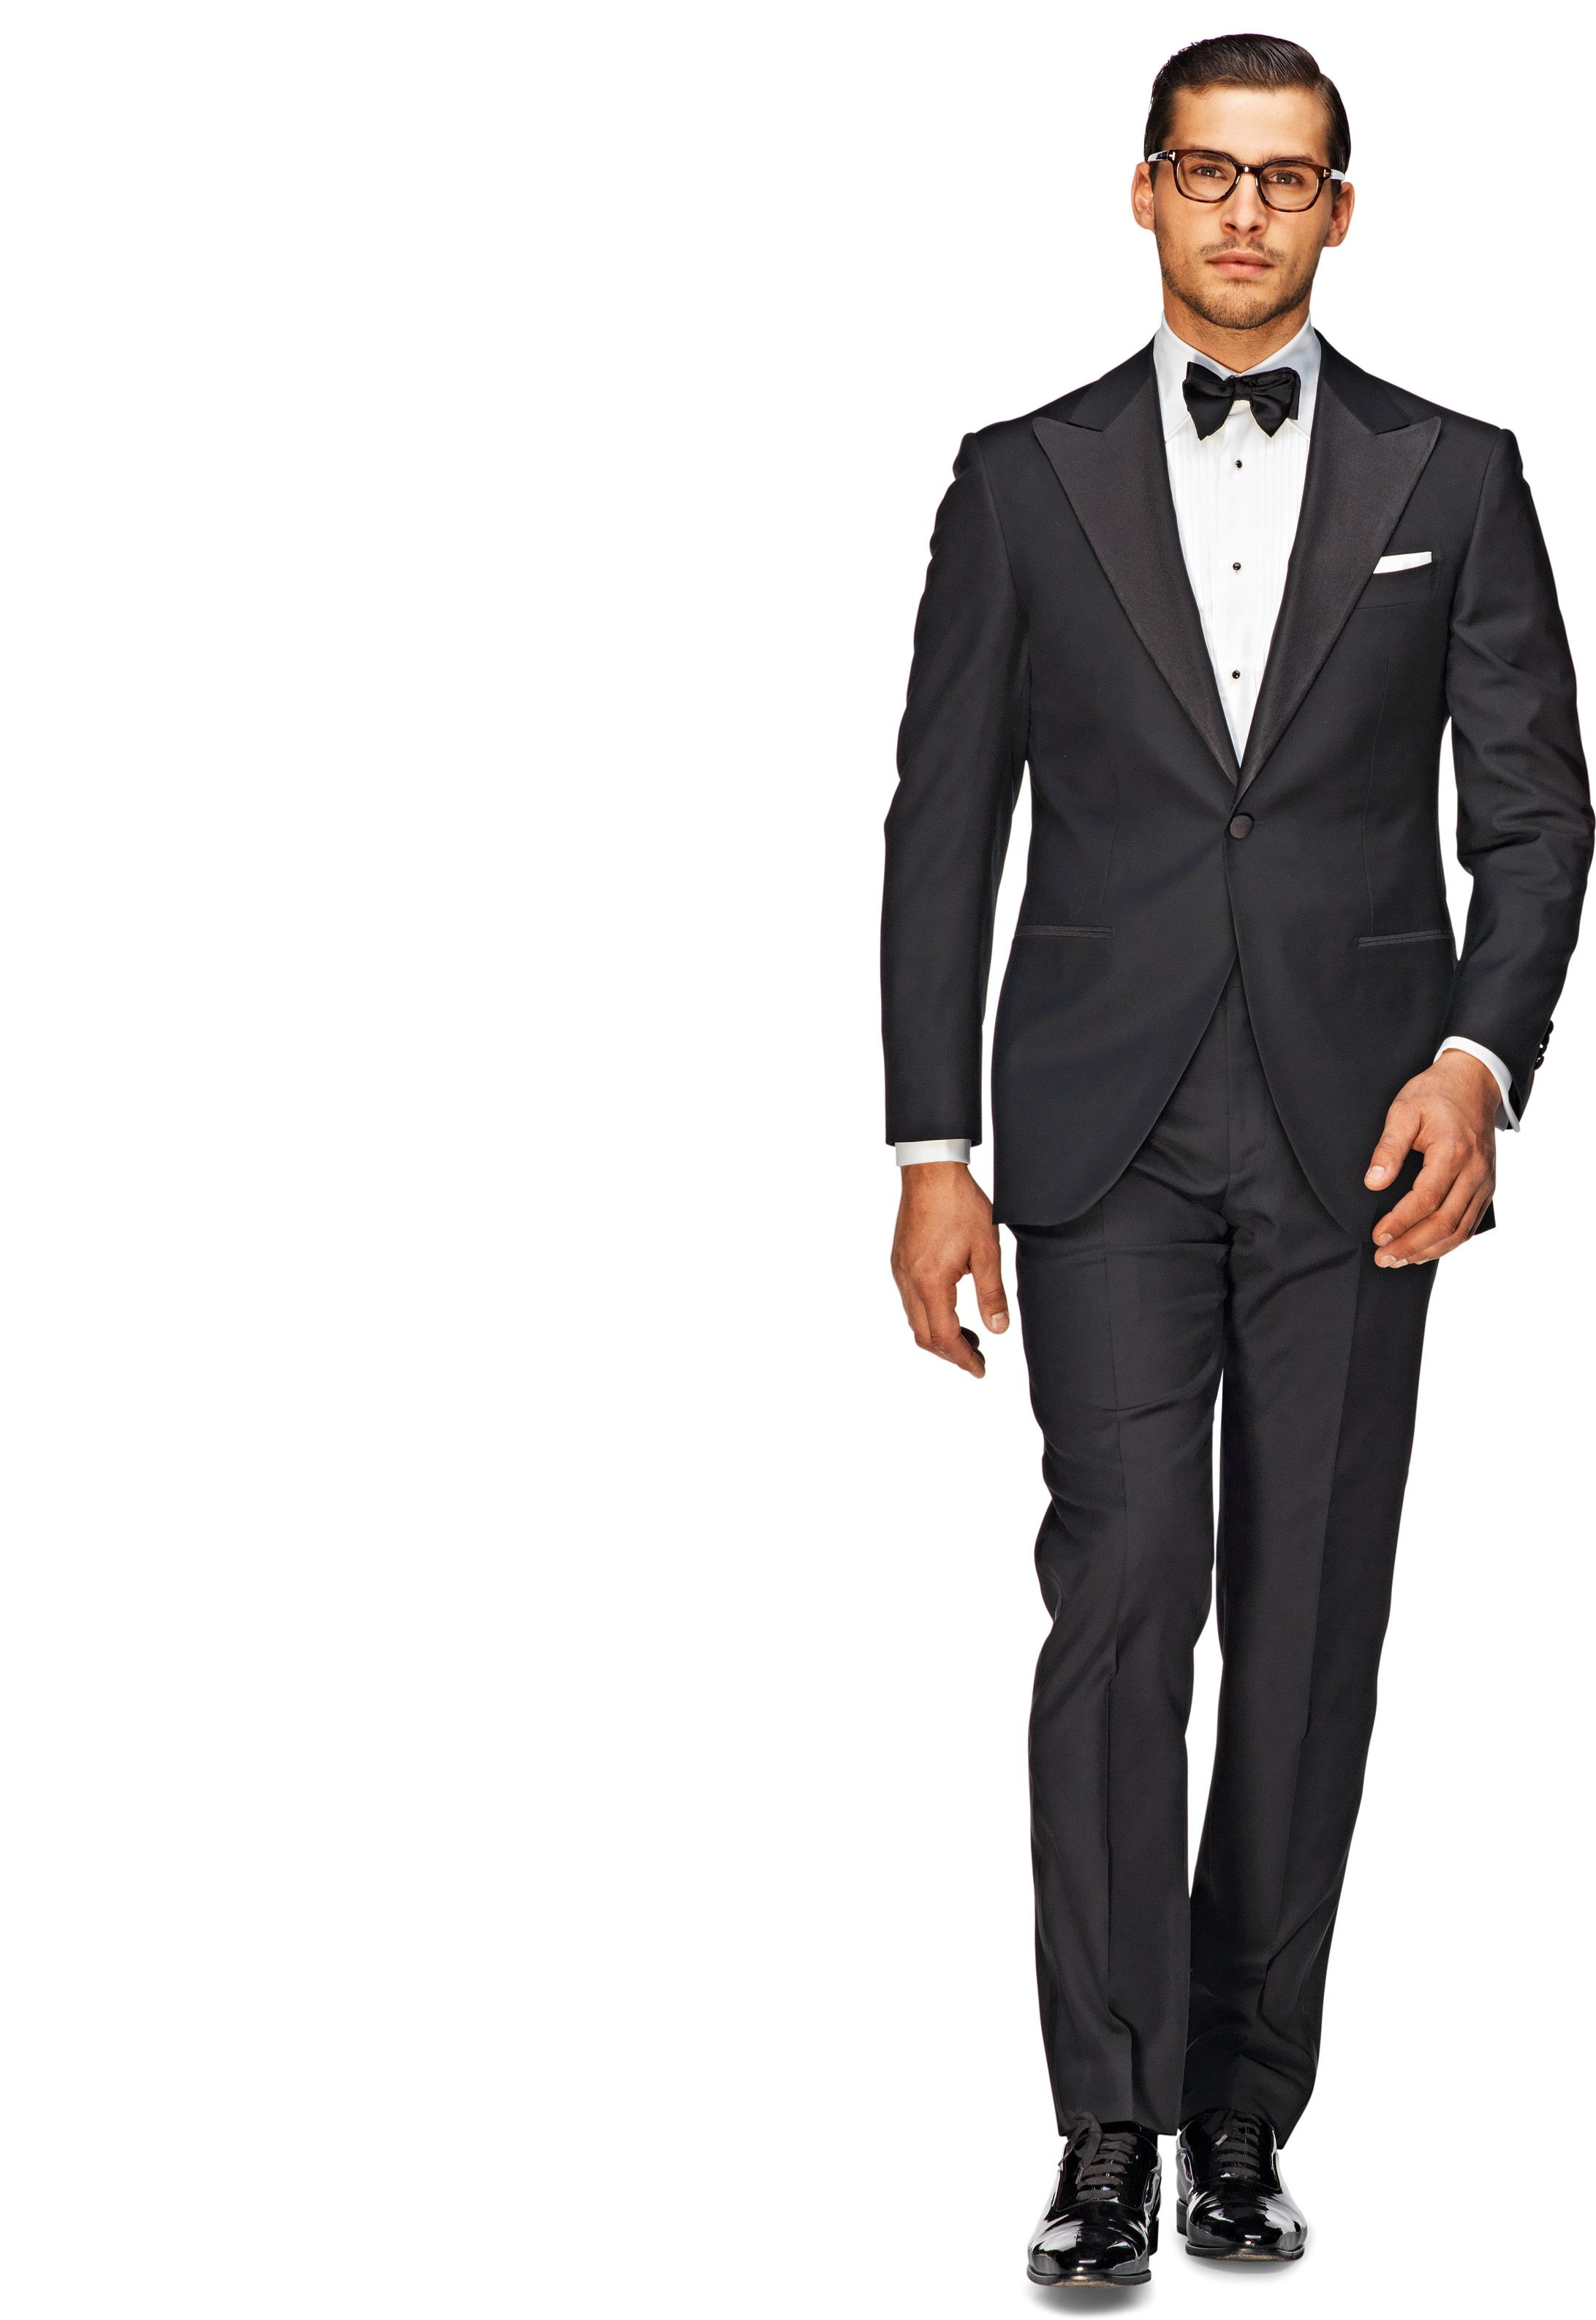 Tuxedo from Suit Supply (Has that Tom Ford style, but at a very affordable  price)